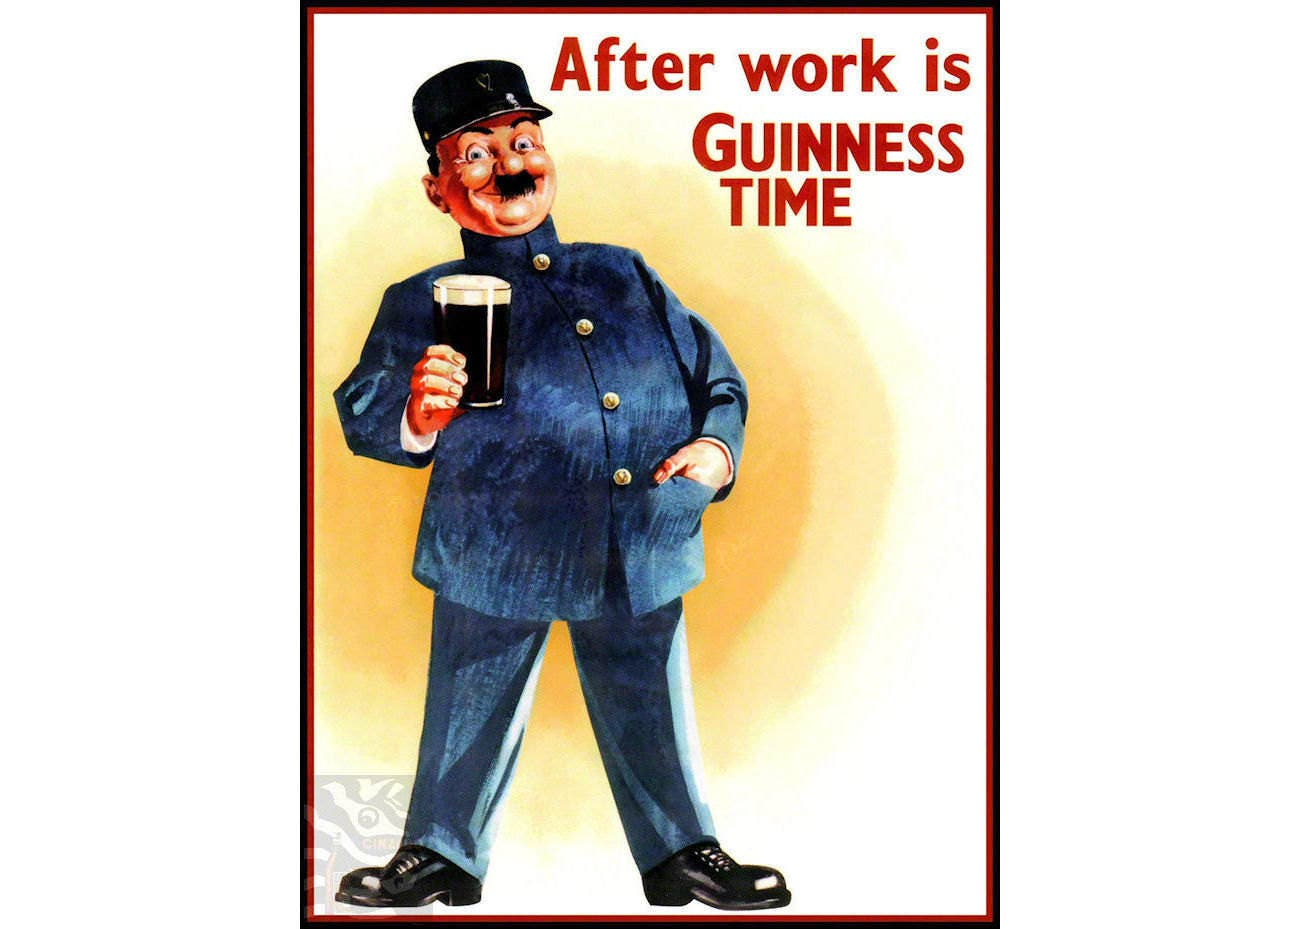 After Work Guinness Vintage Poster Art Print Retro Style Beer